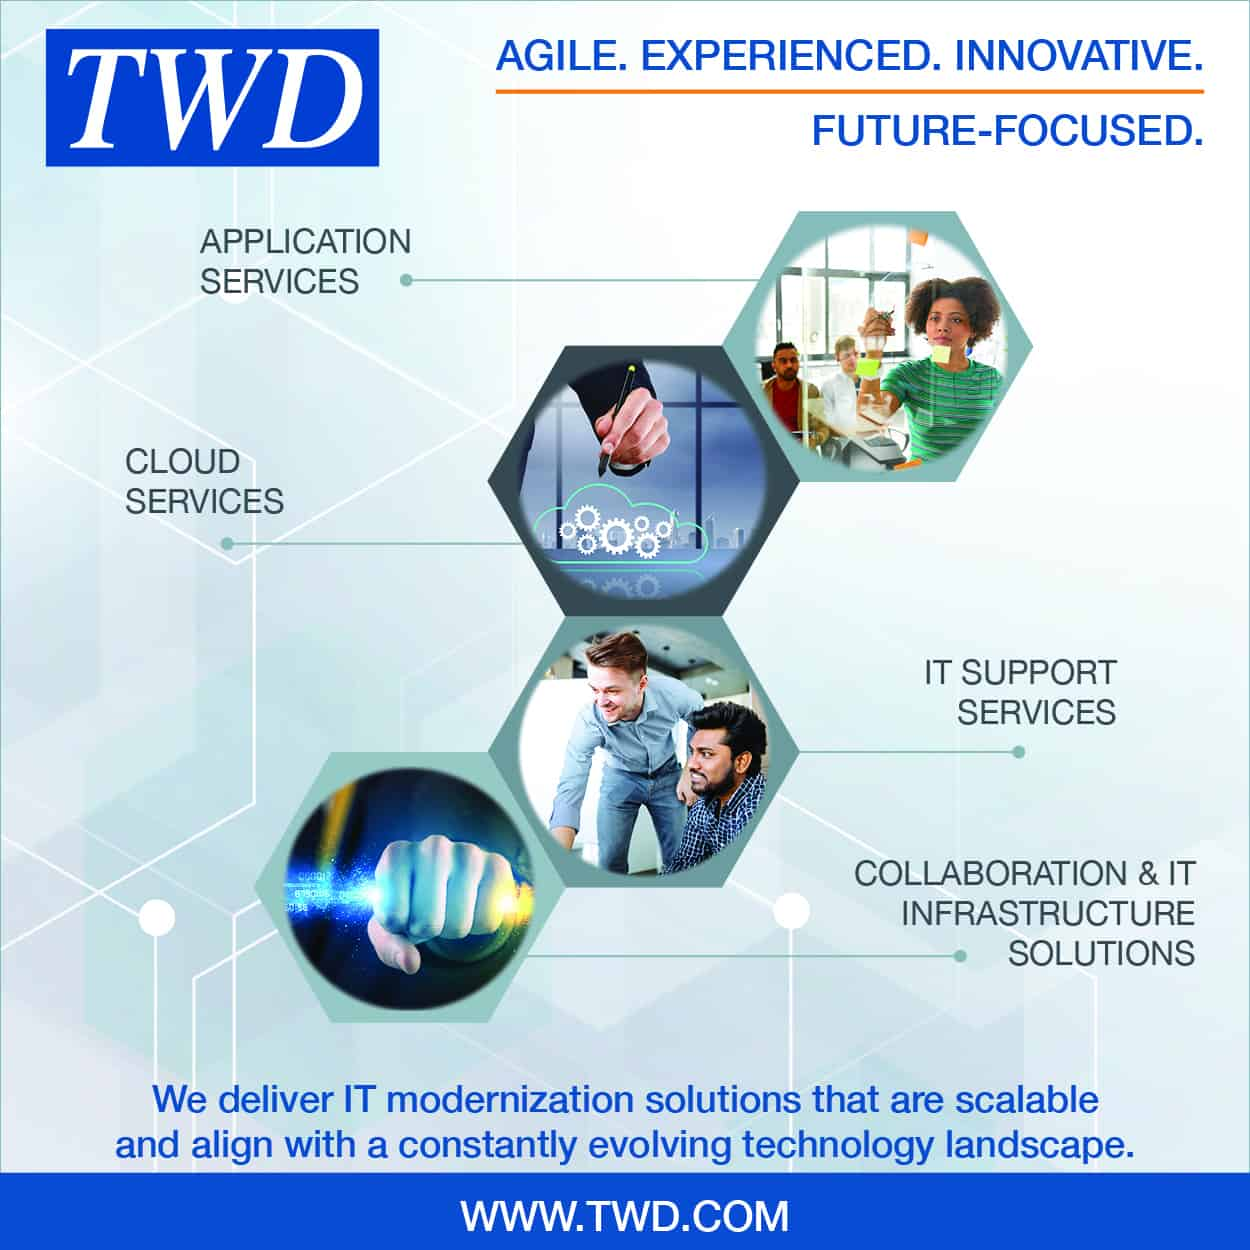 TWD: Agile. Experienced. Innovative. Future Focused. We deliver IT modernization solutions that are scalable and align with a constantly evolving technology landscape.